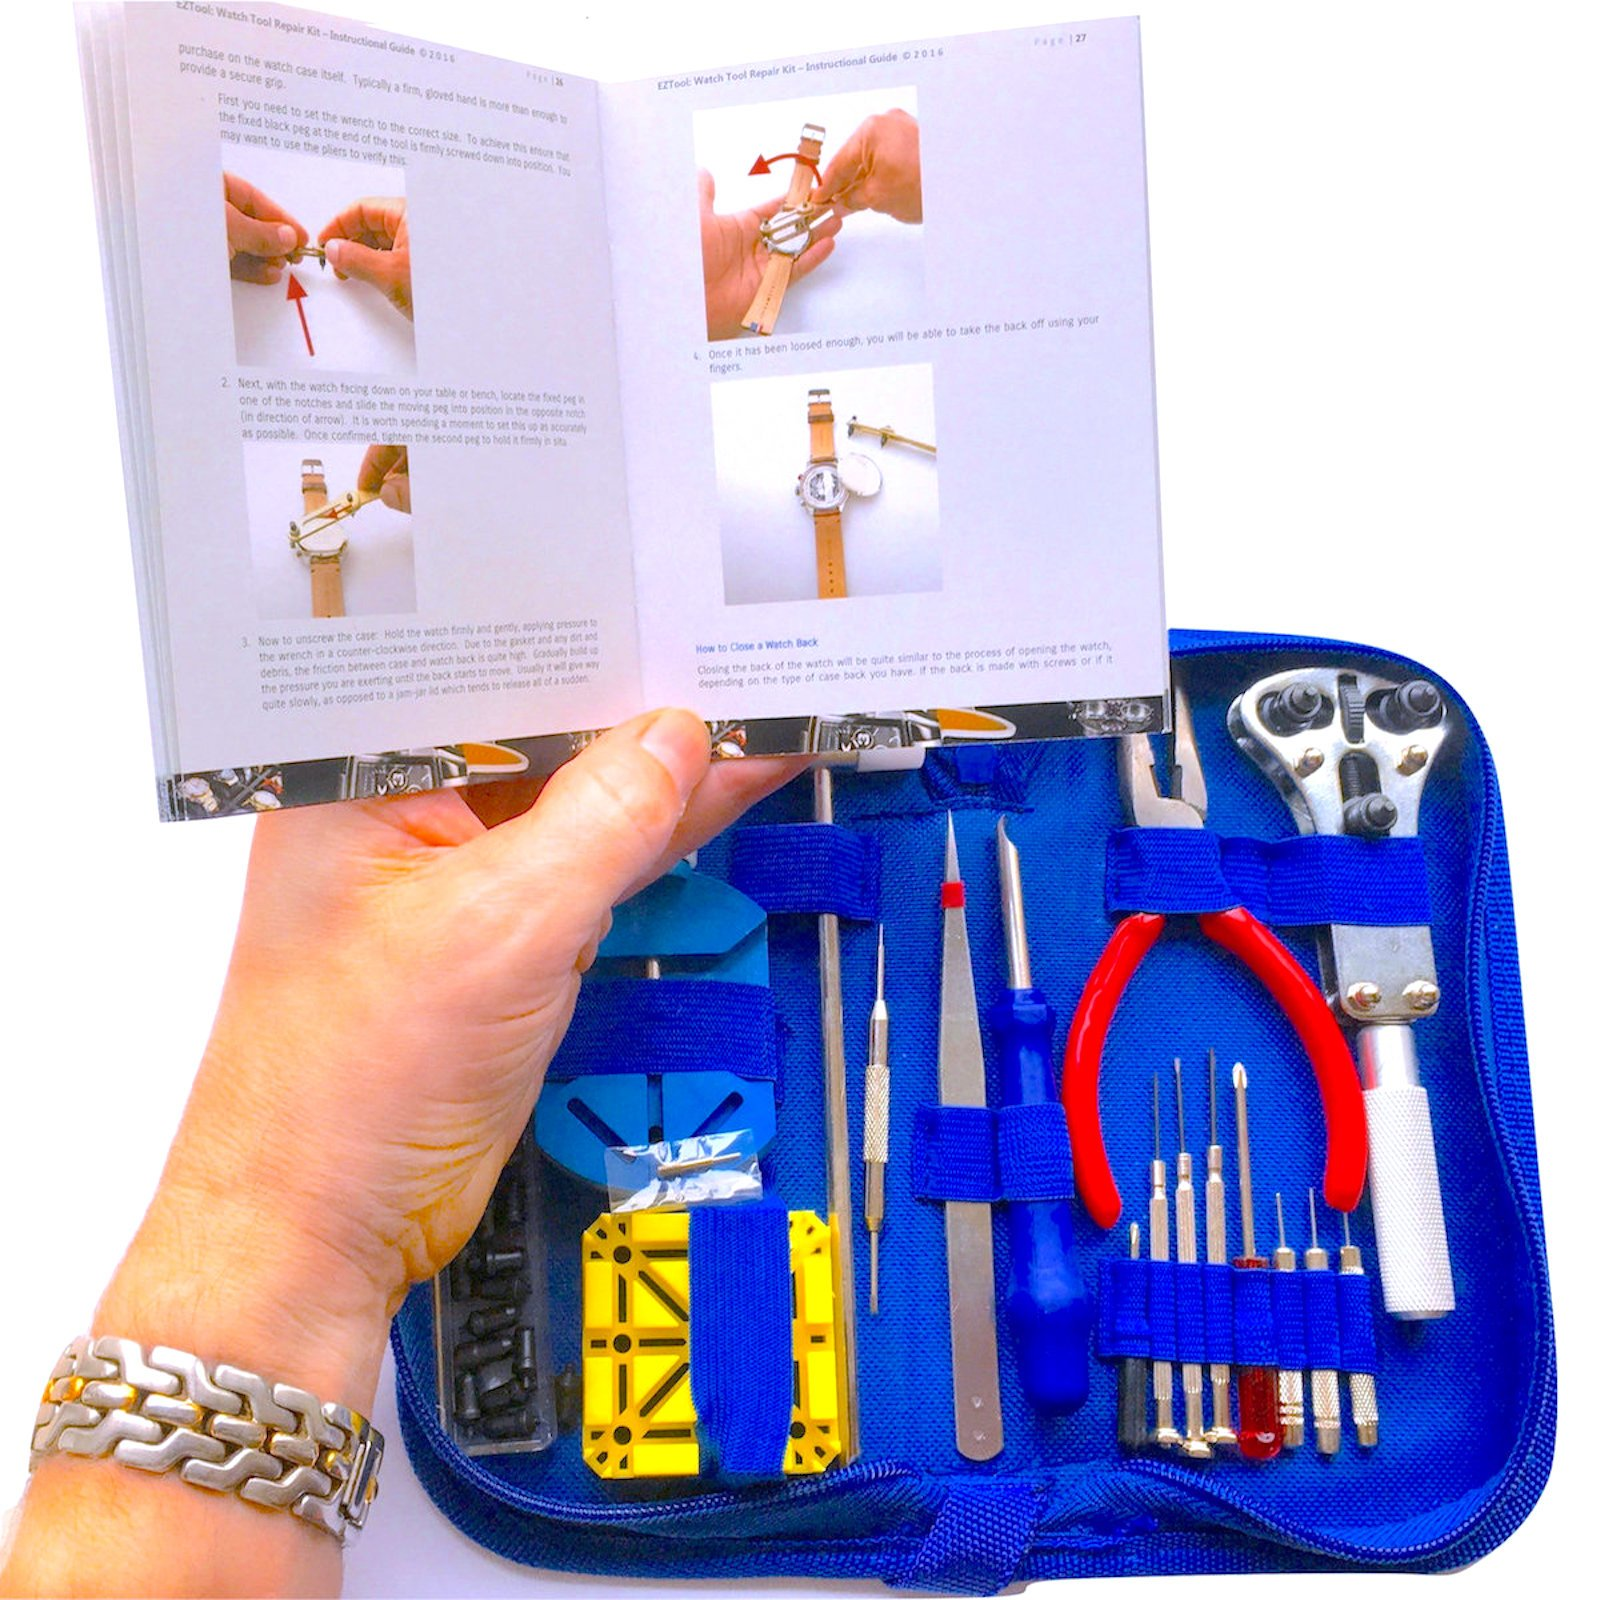 EZTool Professional Watch Repair Tool Kit: Plus 41-Page Illustrated Maintenance & Service Manual by EZTool